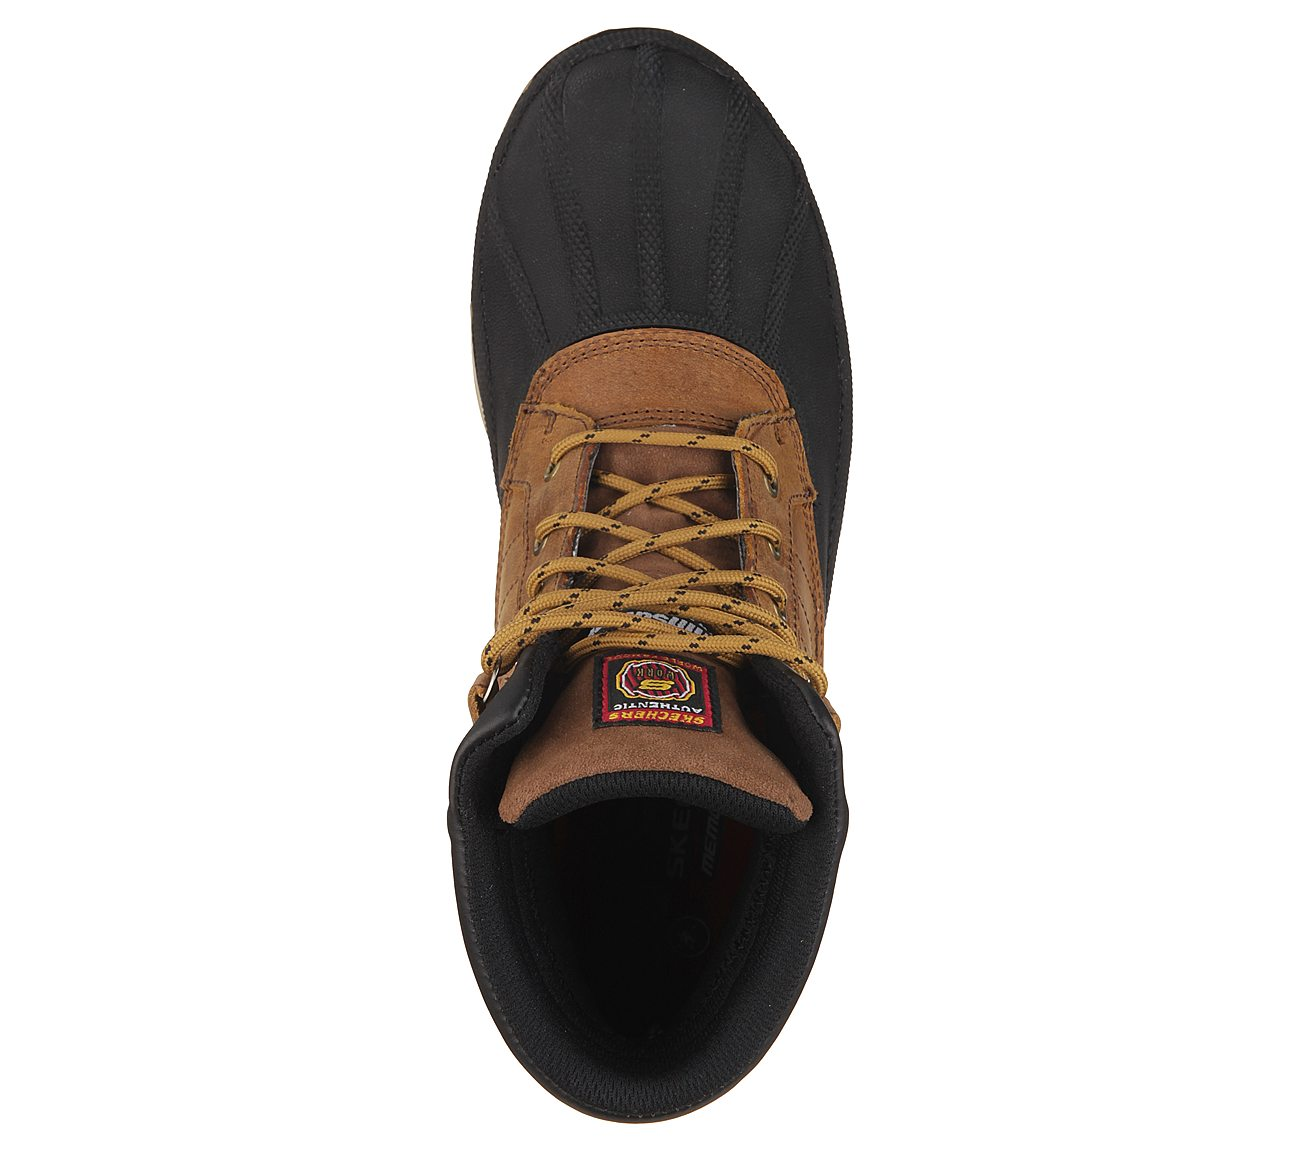 Men's Work: Robards SR huge surprise cheap online outlet store online Manchester 2014 new cheap online 14WCY4uPV